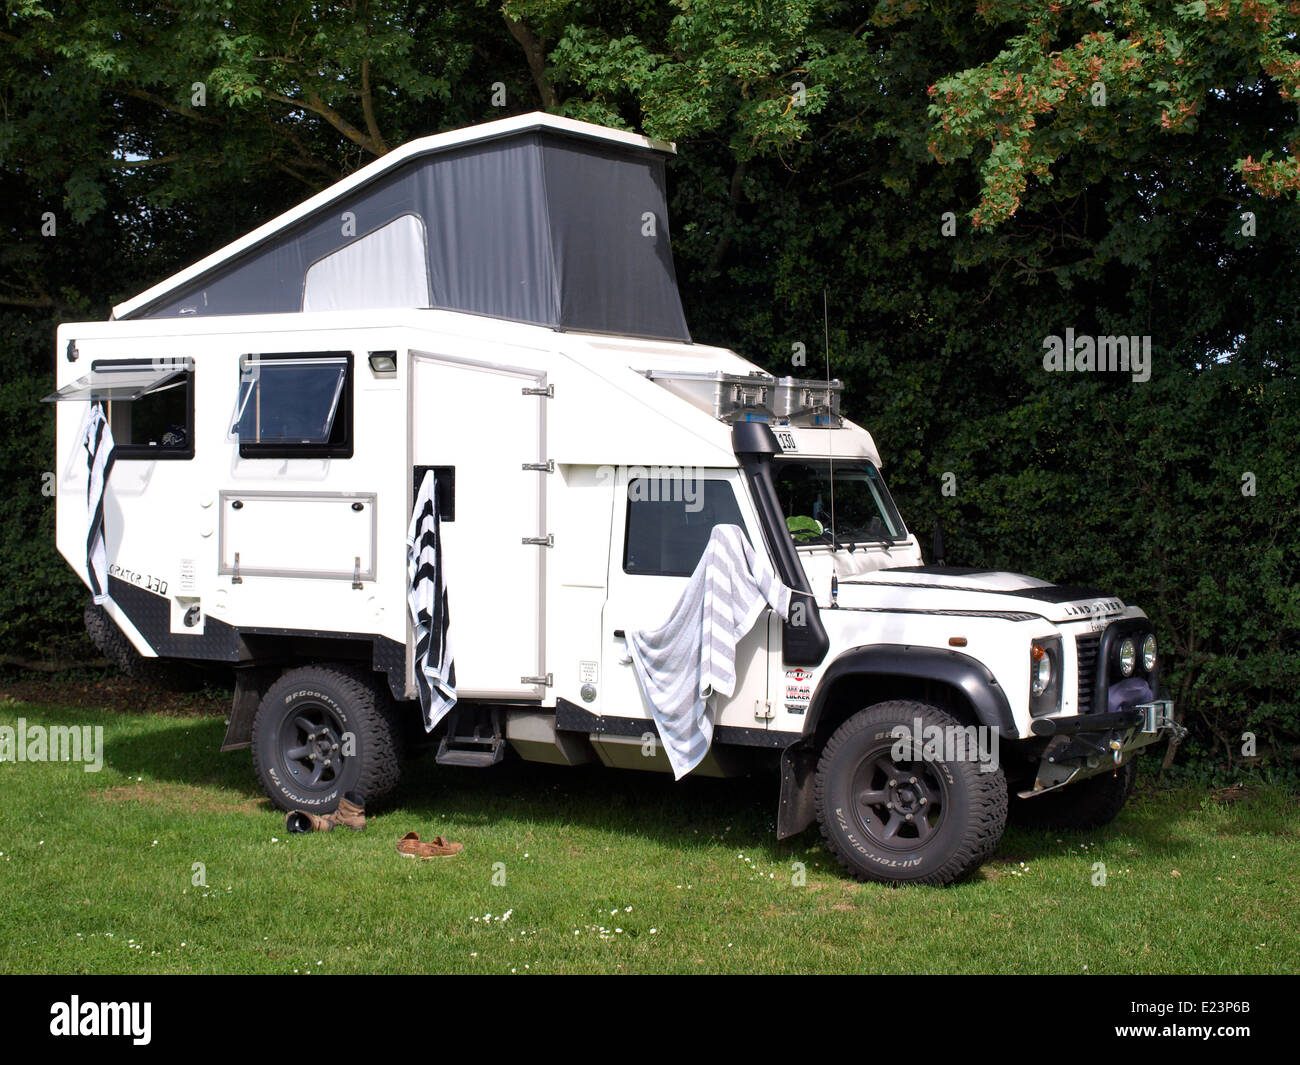 Land Rover Expedition Vehicle Stock Photo Royalty Free